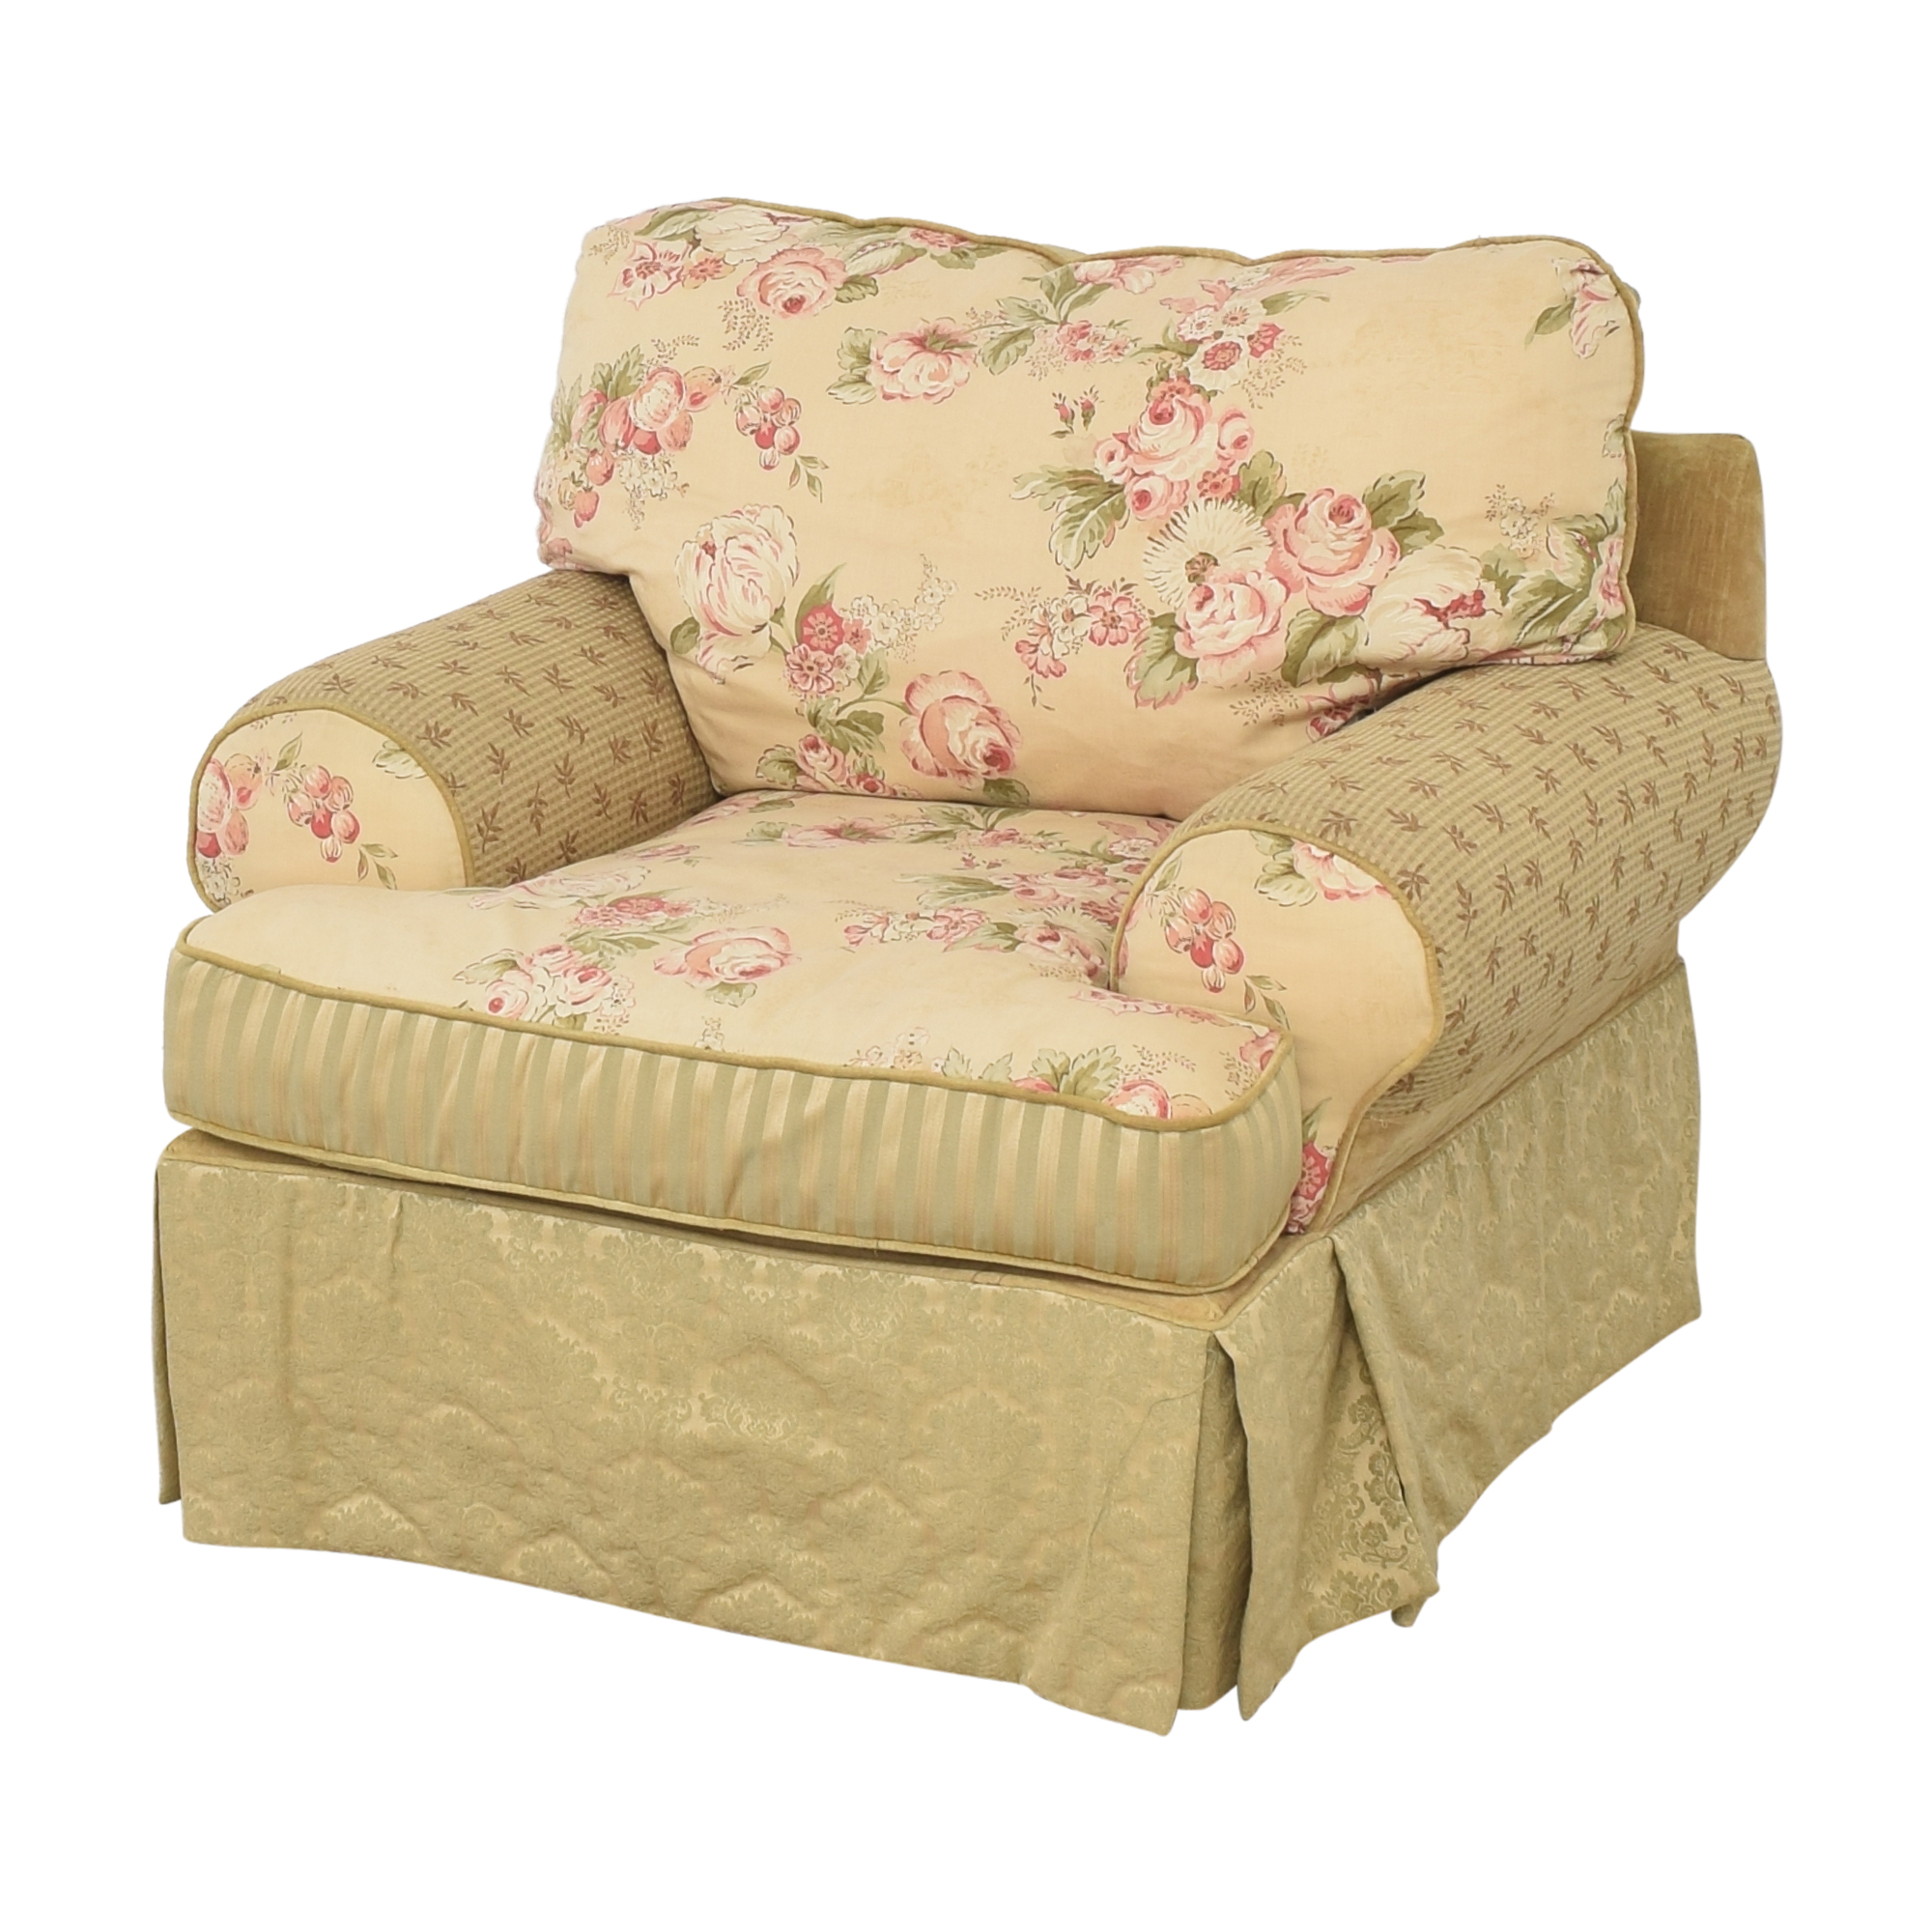 buy Domain Home Floral and Stripe Accent Chair with Ottoman Domain Home Accent Chairs